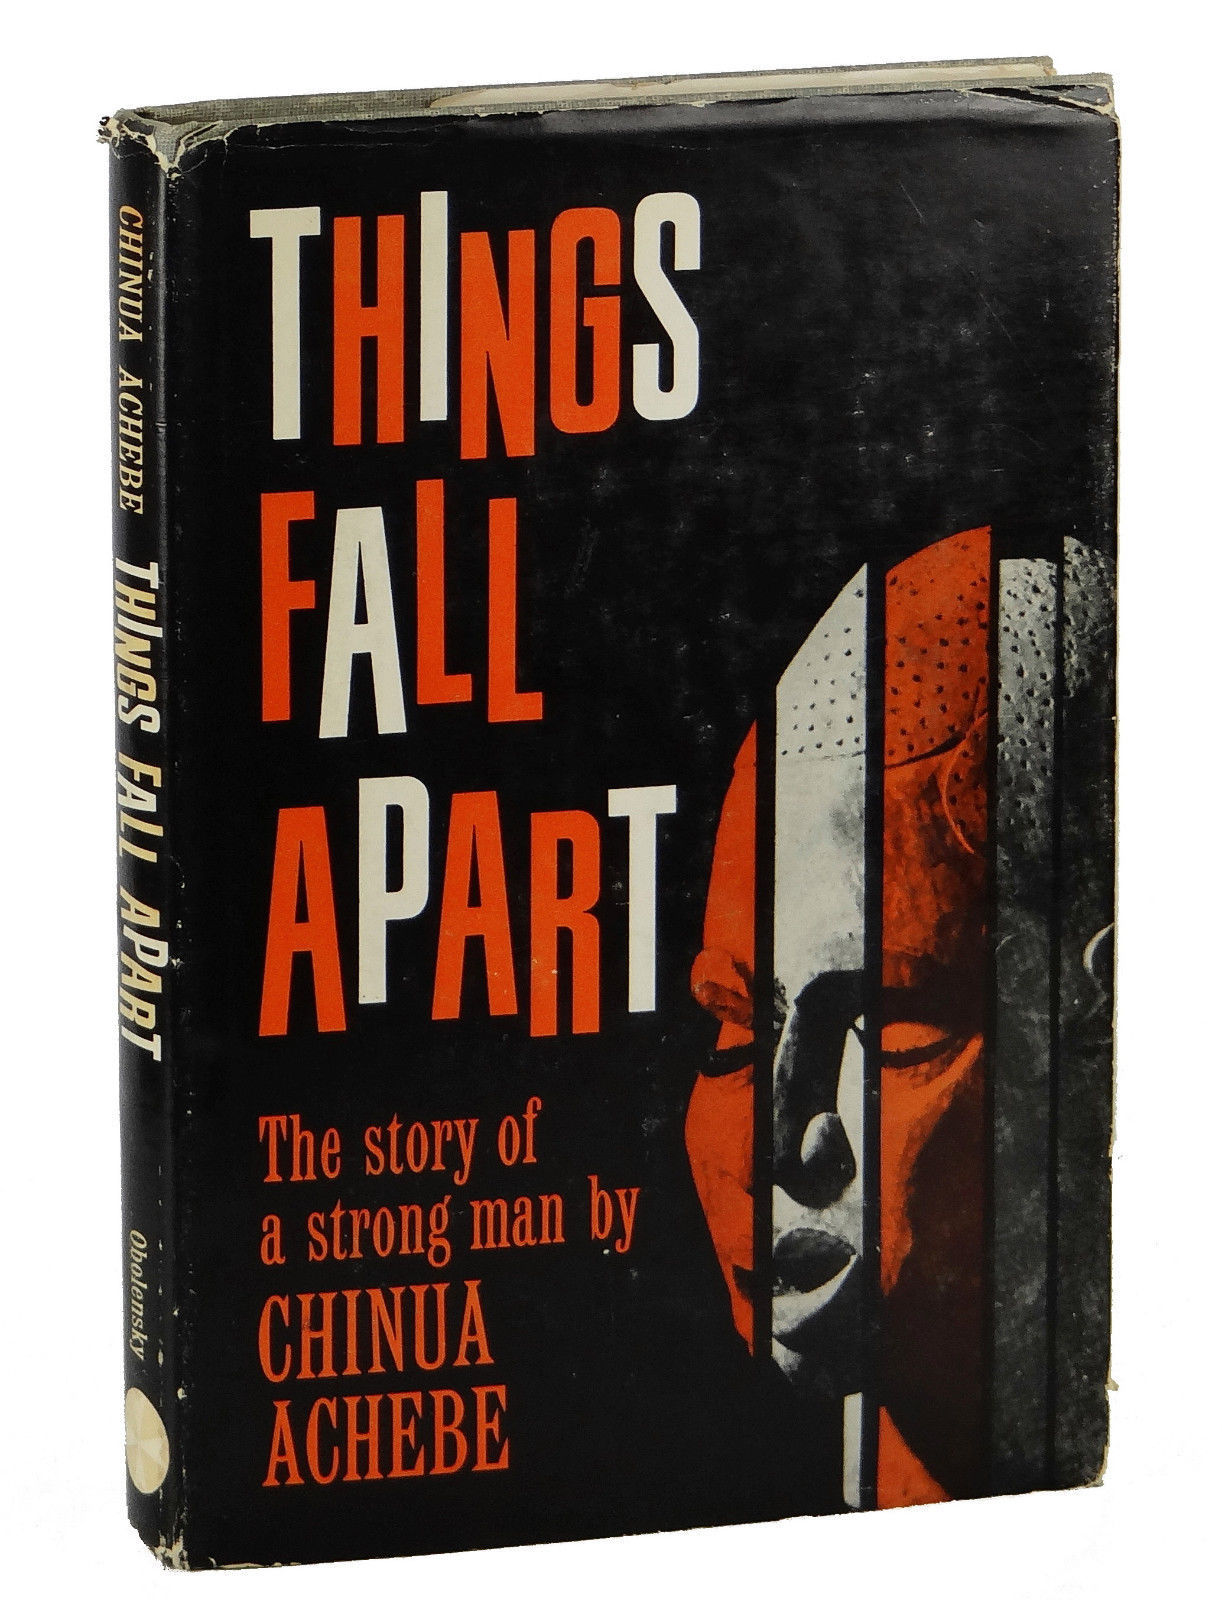 the assimilation in the book things fall apart by chinua achebe European assimilation in igbo society in the 1900s, europeans reached   however, in the novel things fall apart, chinua achebe shows the positive and.